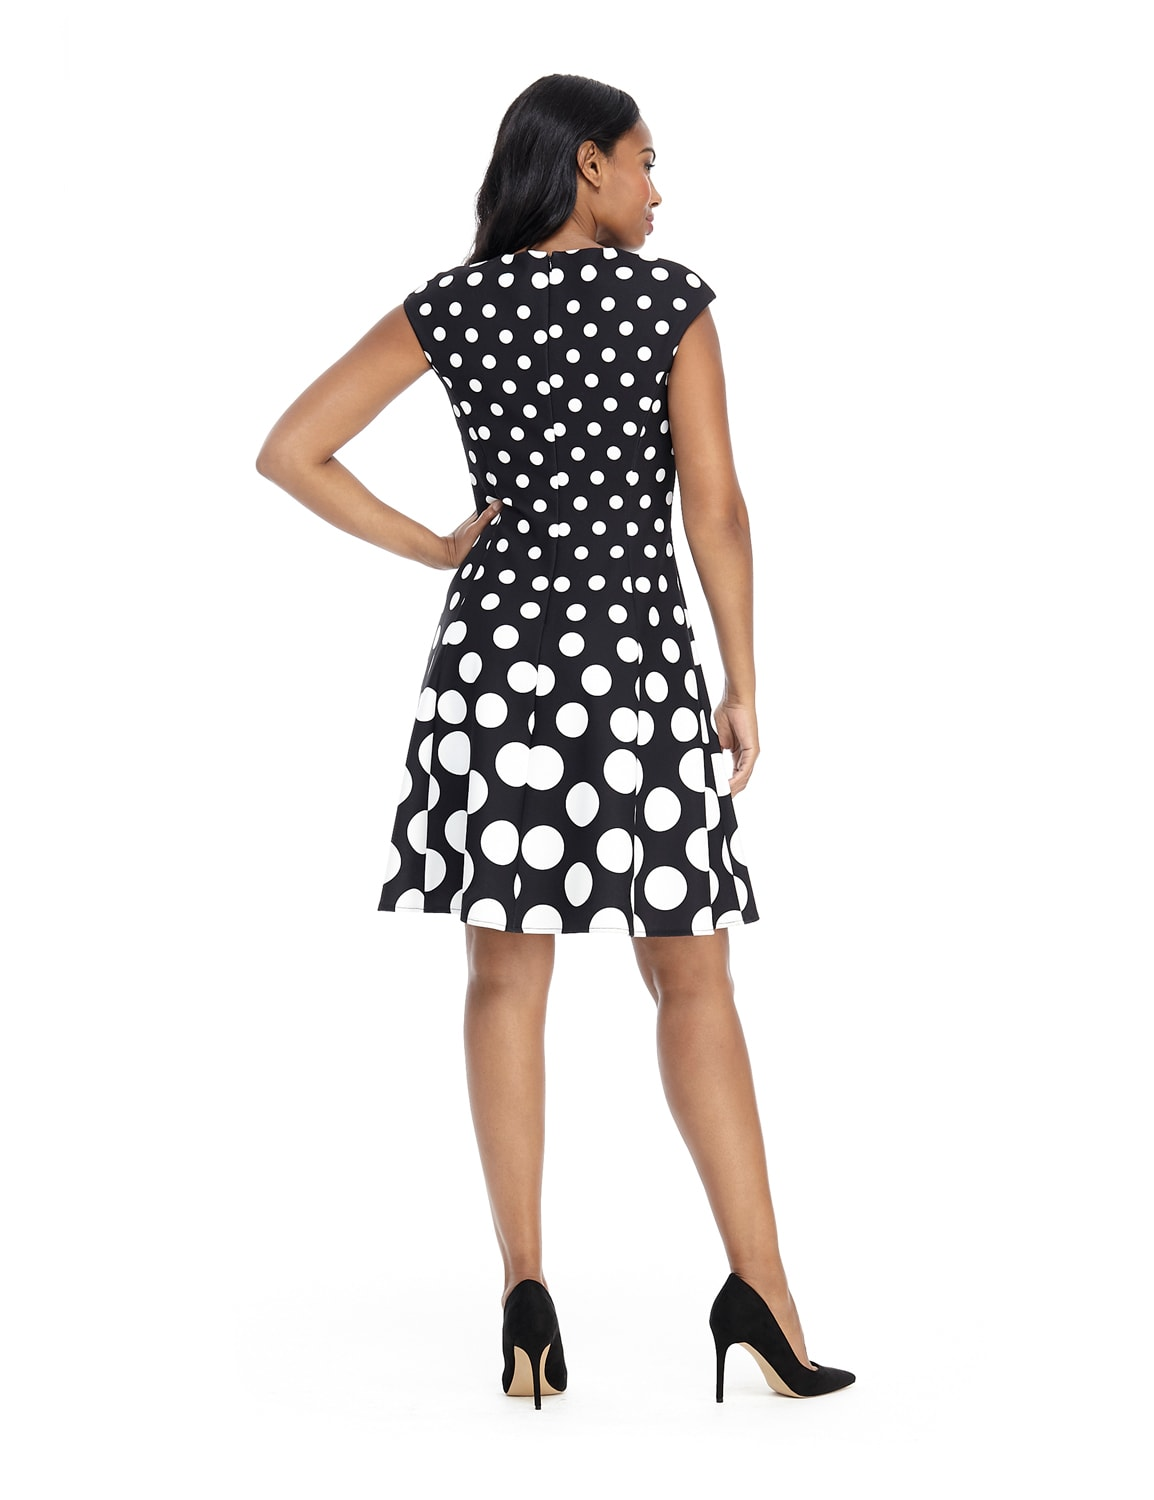 Cap Sleeve Graduated Dot Dress - Black/White - Back